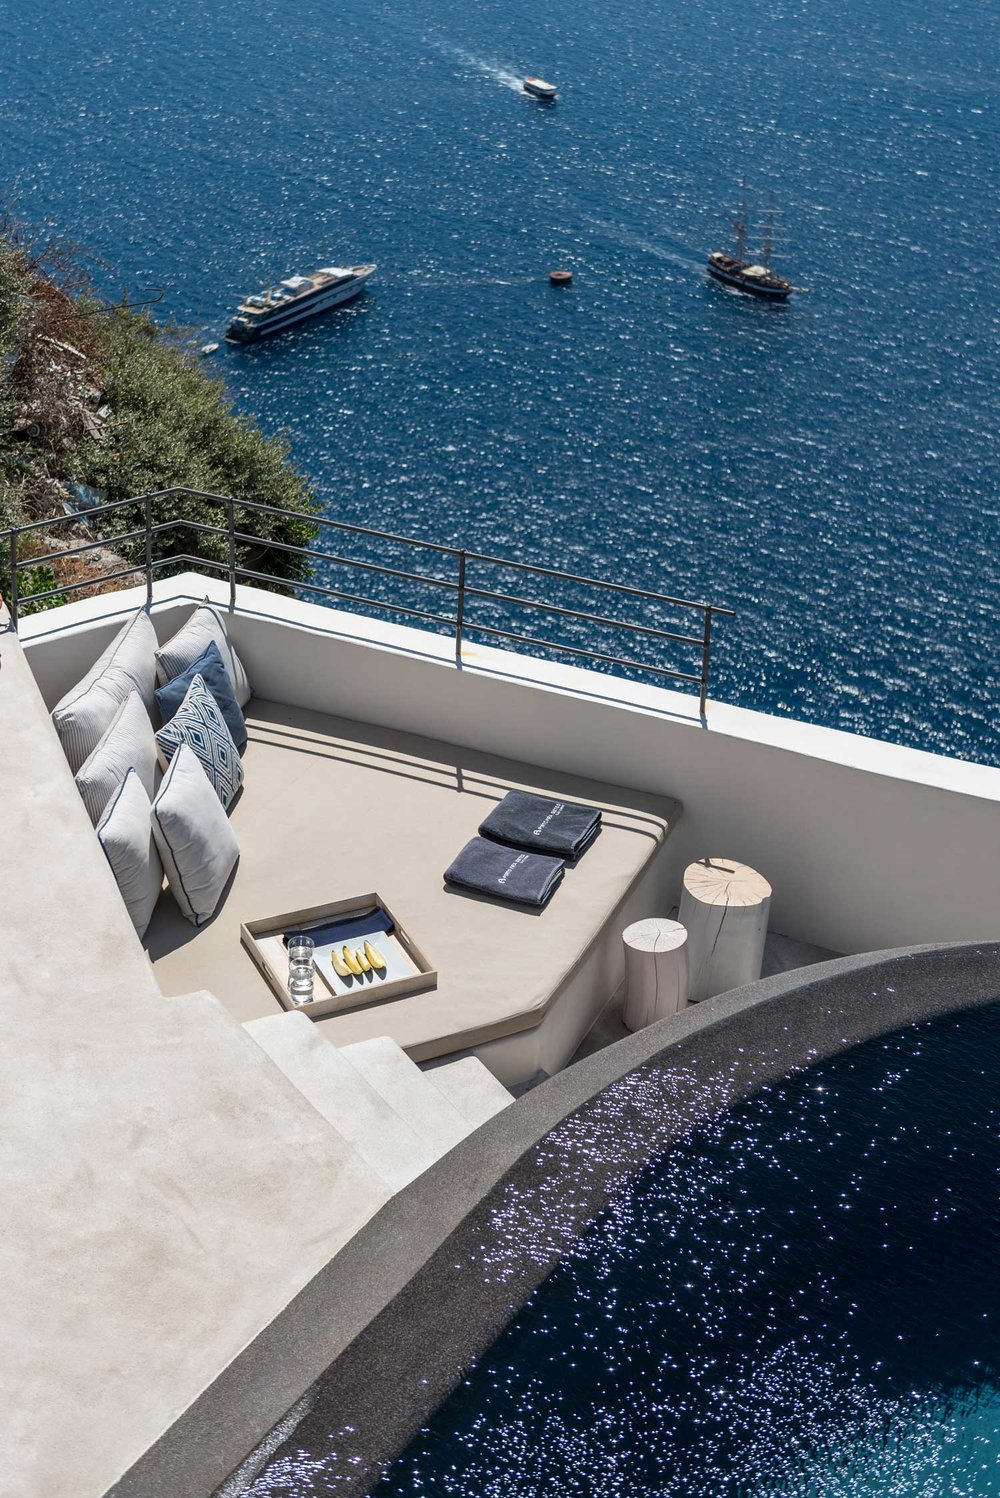 Porto-Fira-Suites-Hotel-in-Santorini-by-Interior-Design-Laboratorium-Yellowtrace-23.jpg